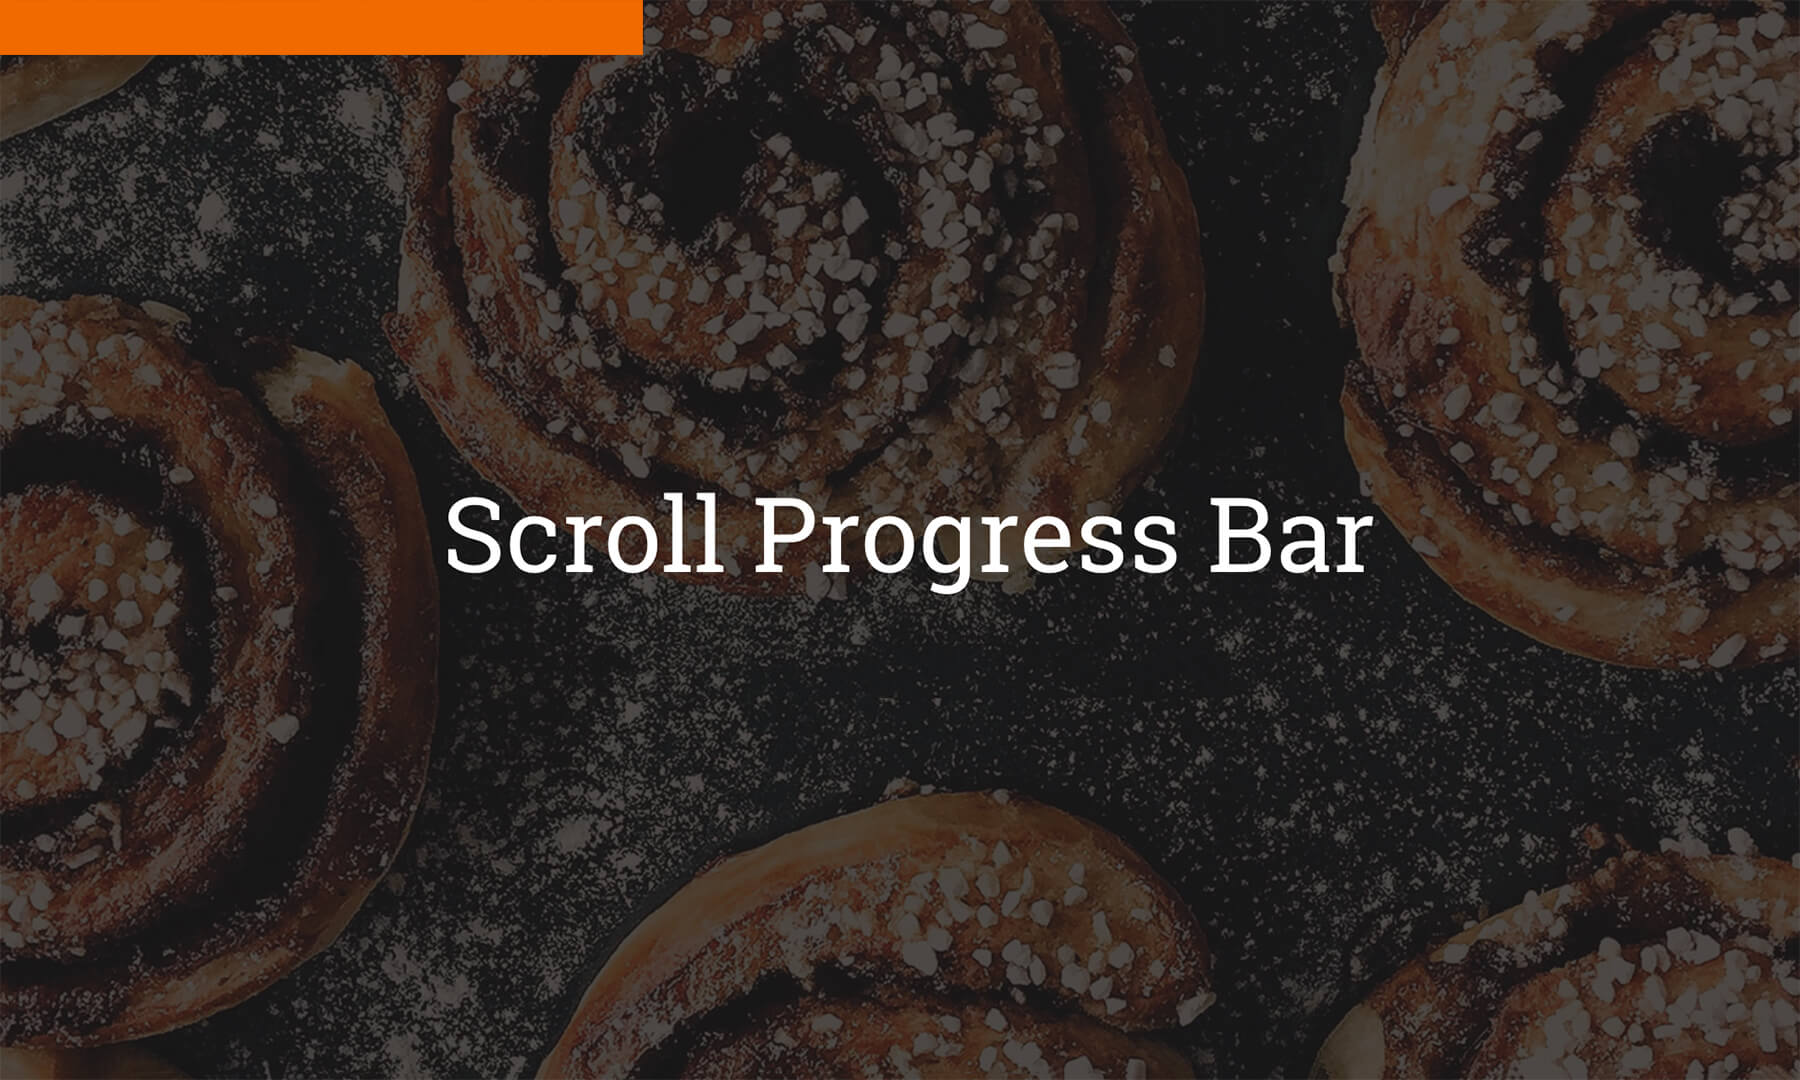 Scroll Progress Bar Widget by MuseThemes